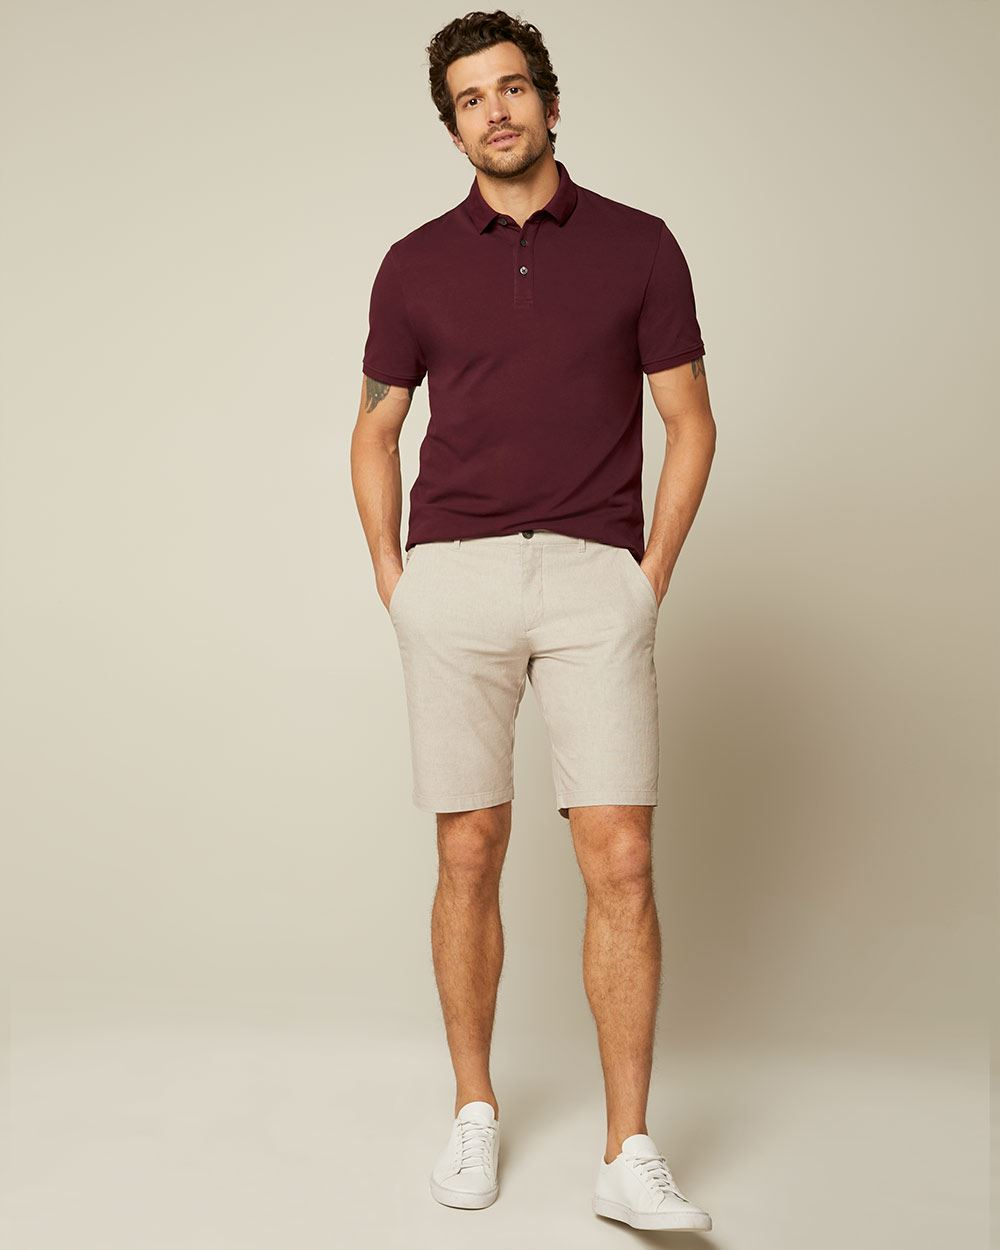 Short Sleeve stretch piqué polo